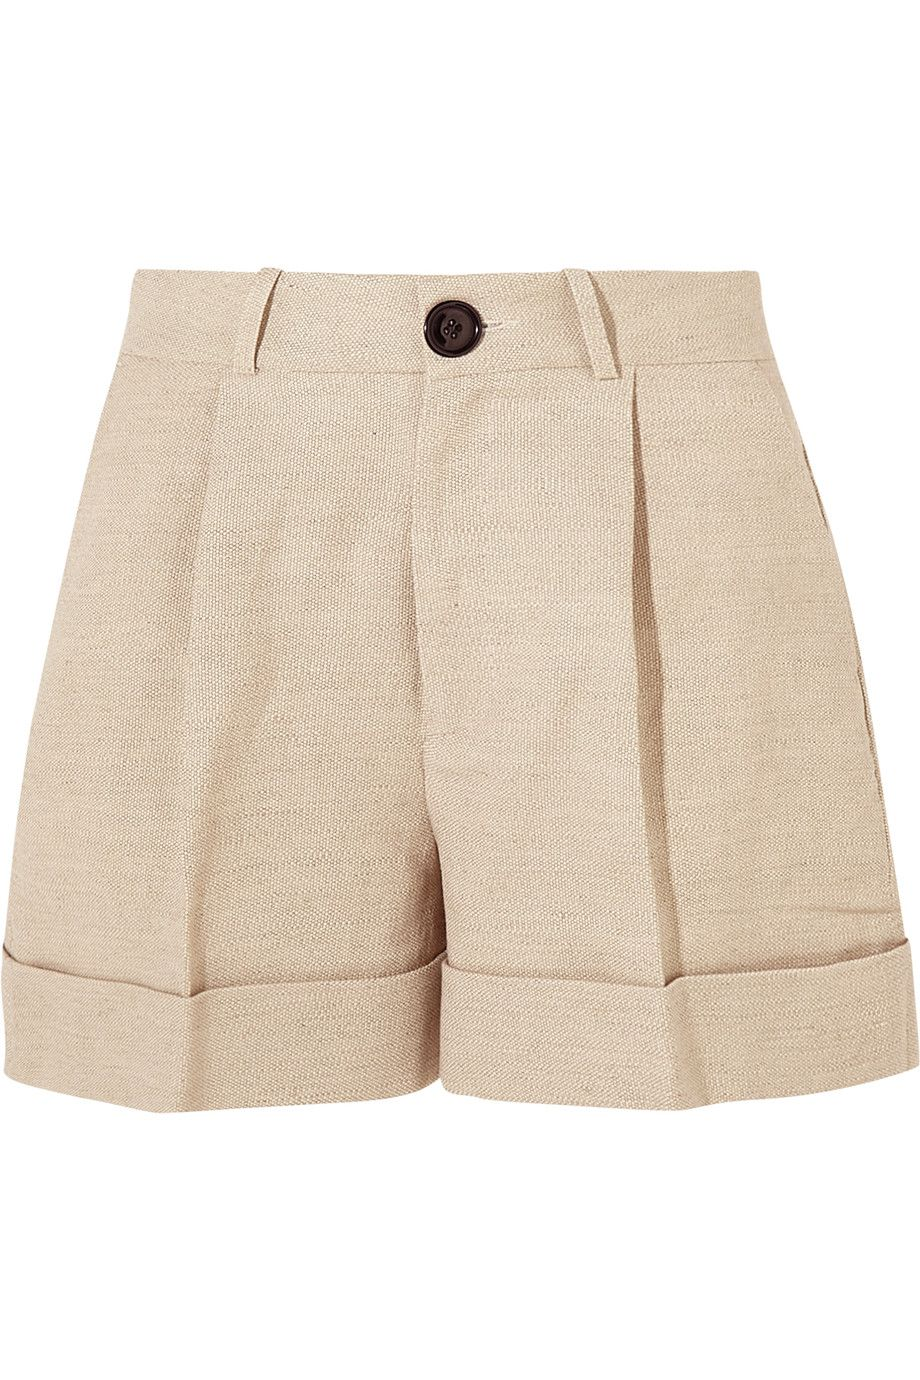 Shop on-sale Totême Tanzania linen and cotton-blend shorts. Browse other discount designer Shorts & more on The Most Fashionable Fashion Outlet, THE OUTNET.COM